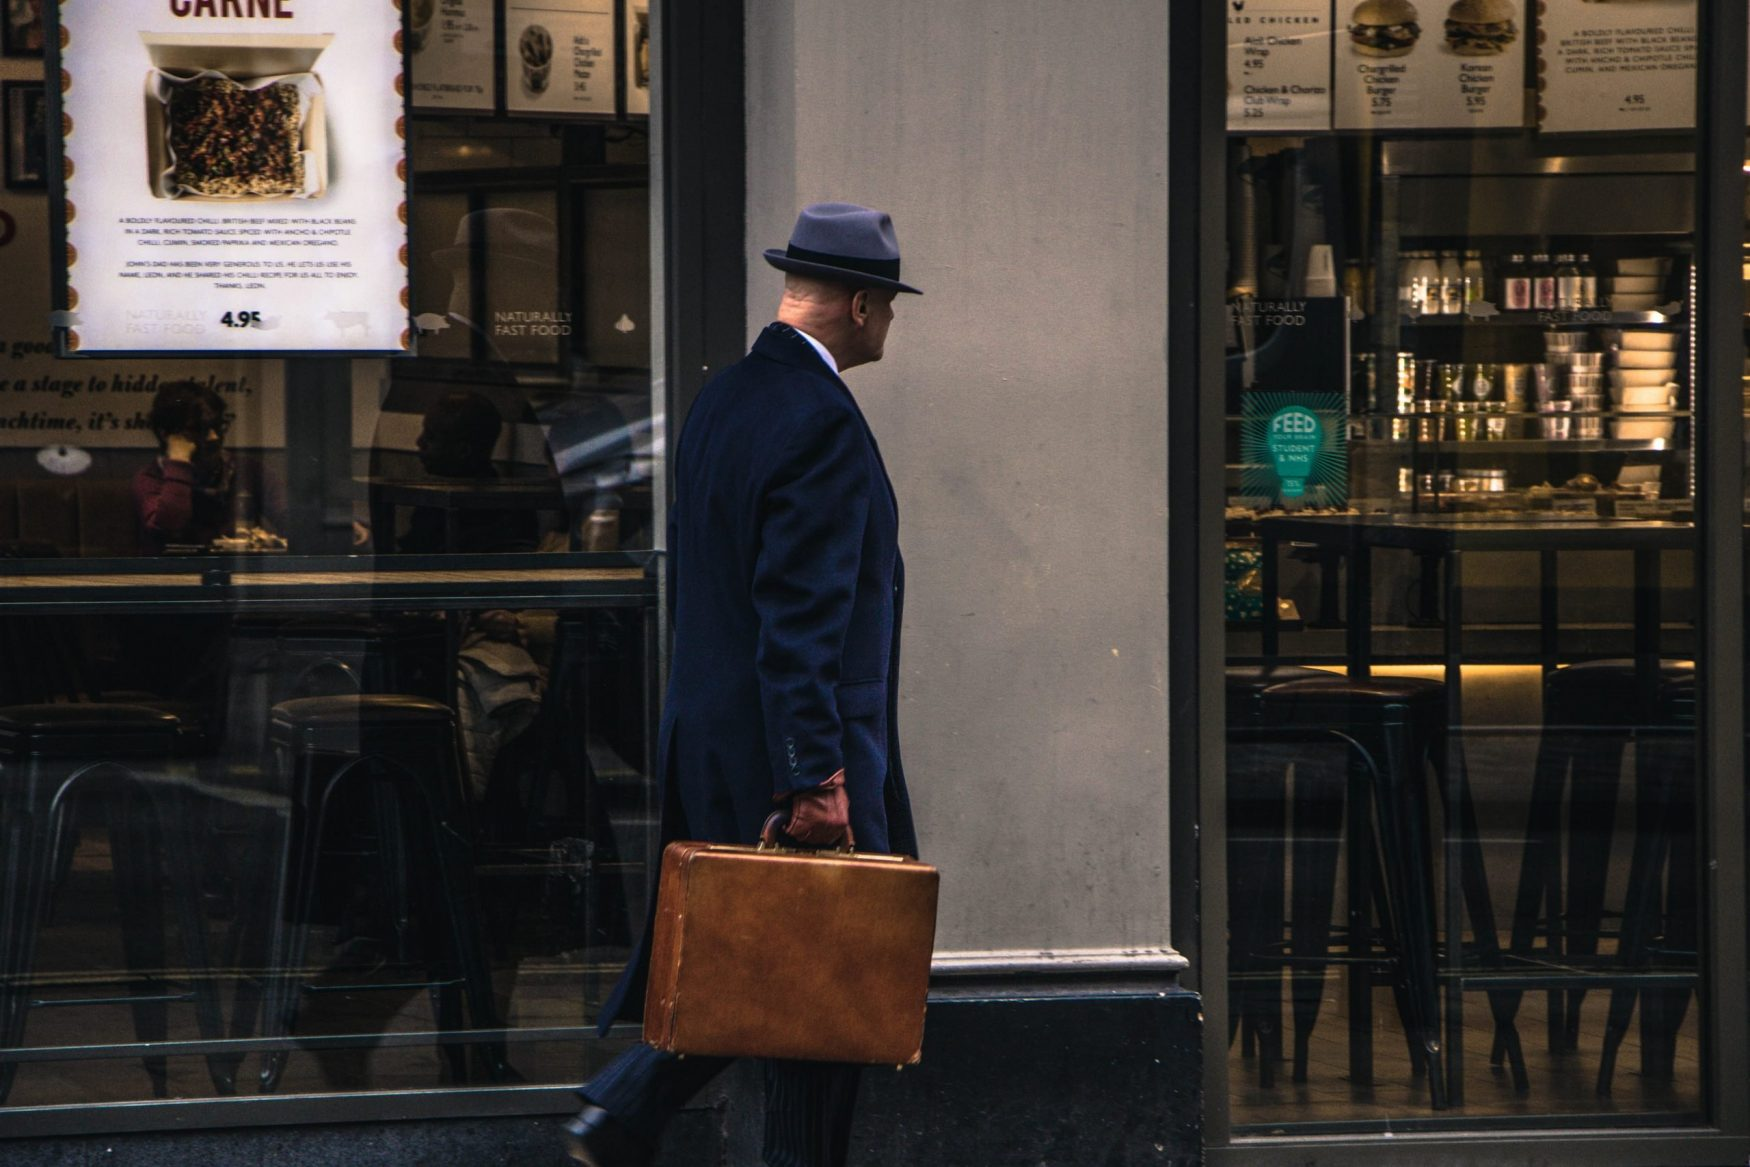 This is a picture of a man with a hat and long jacket in Berlin for an article called Is Competitive Intelligence Exciting as a James Bond or Le Carre Spy Novel by Octopus Competitive Intelligence Competitor Analysis focused on creating certainty